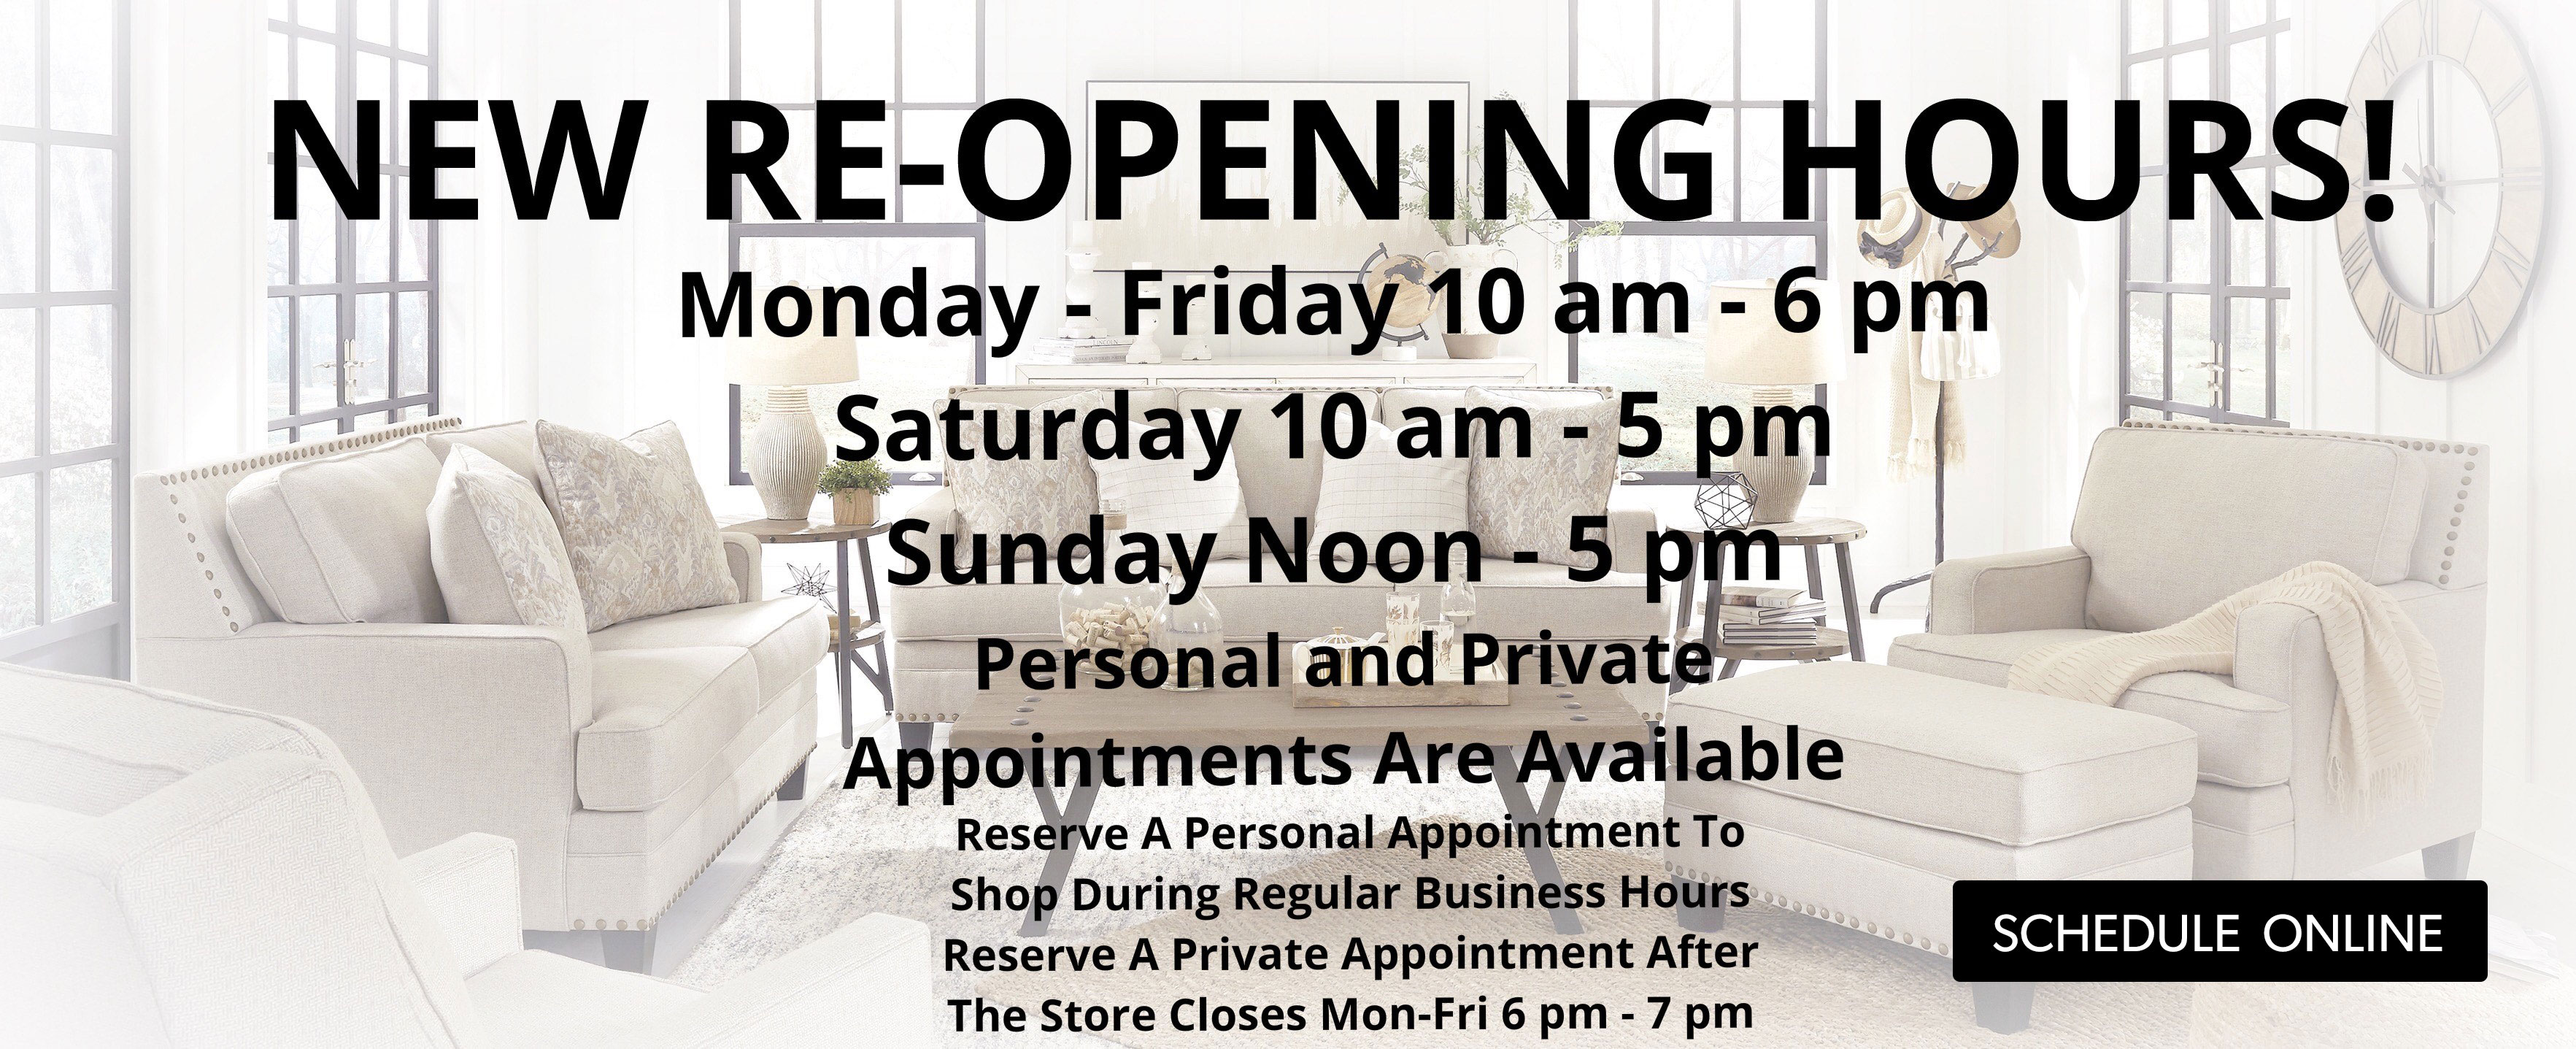 new re-opening hours